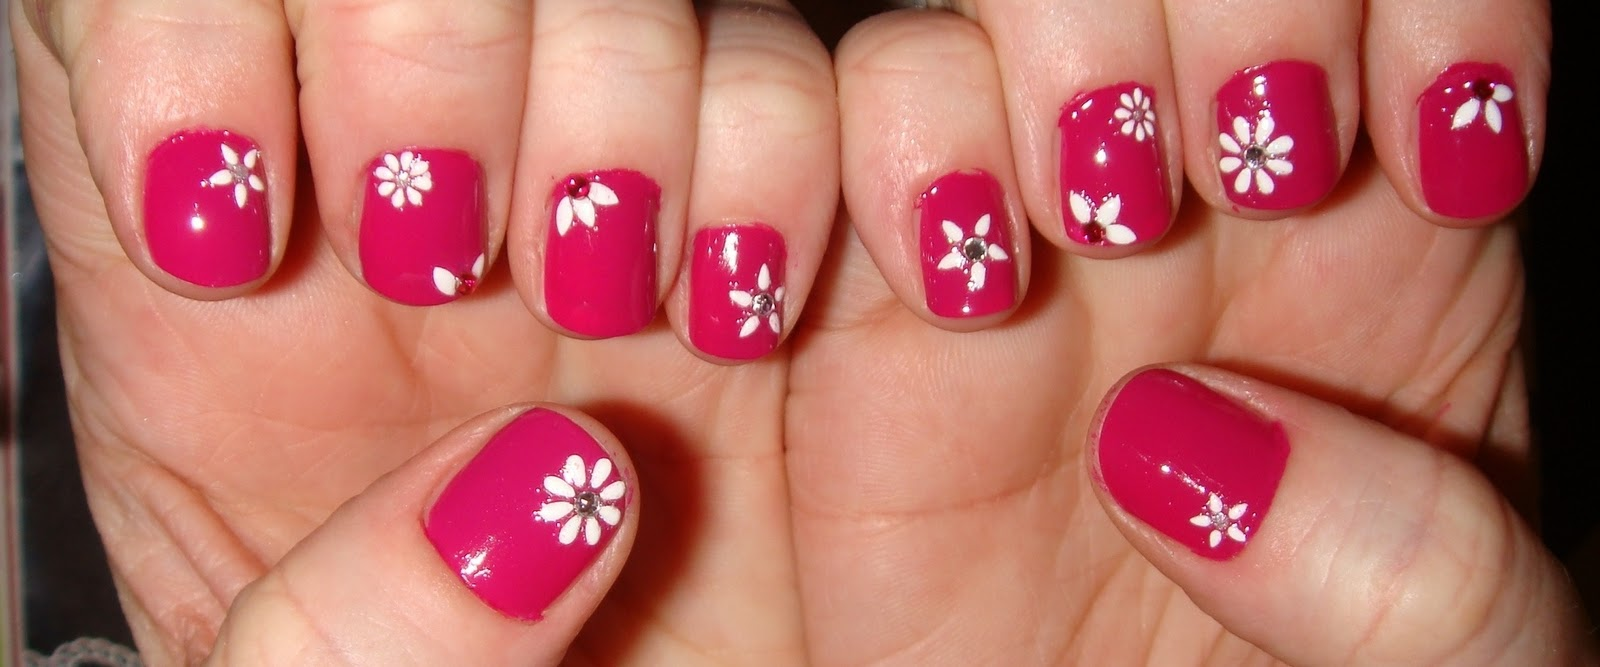 Hot Pink Nail Designs - Pccala